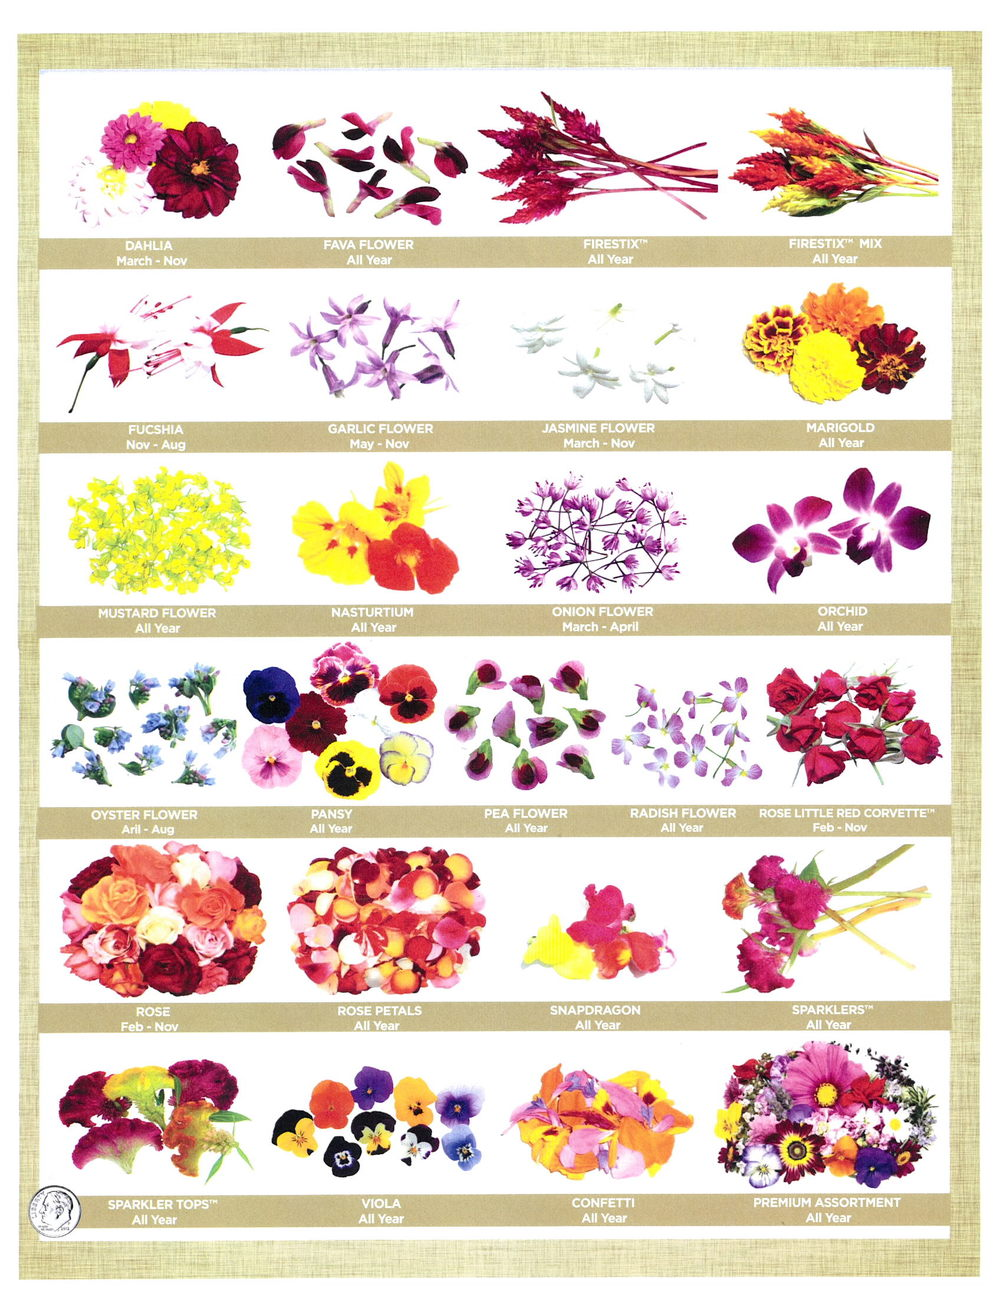 edible flowers page 2